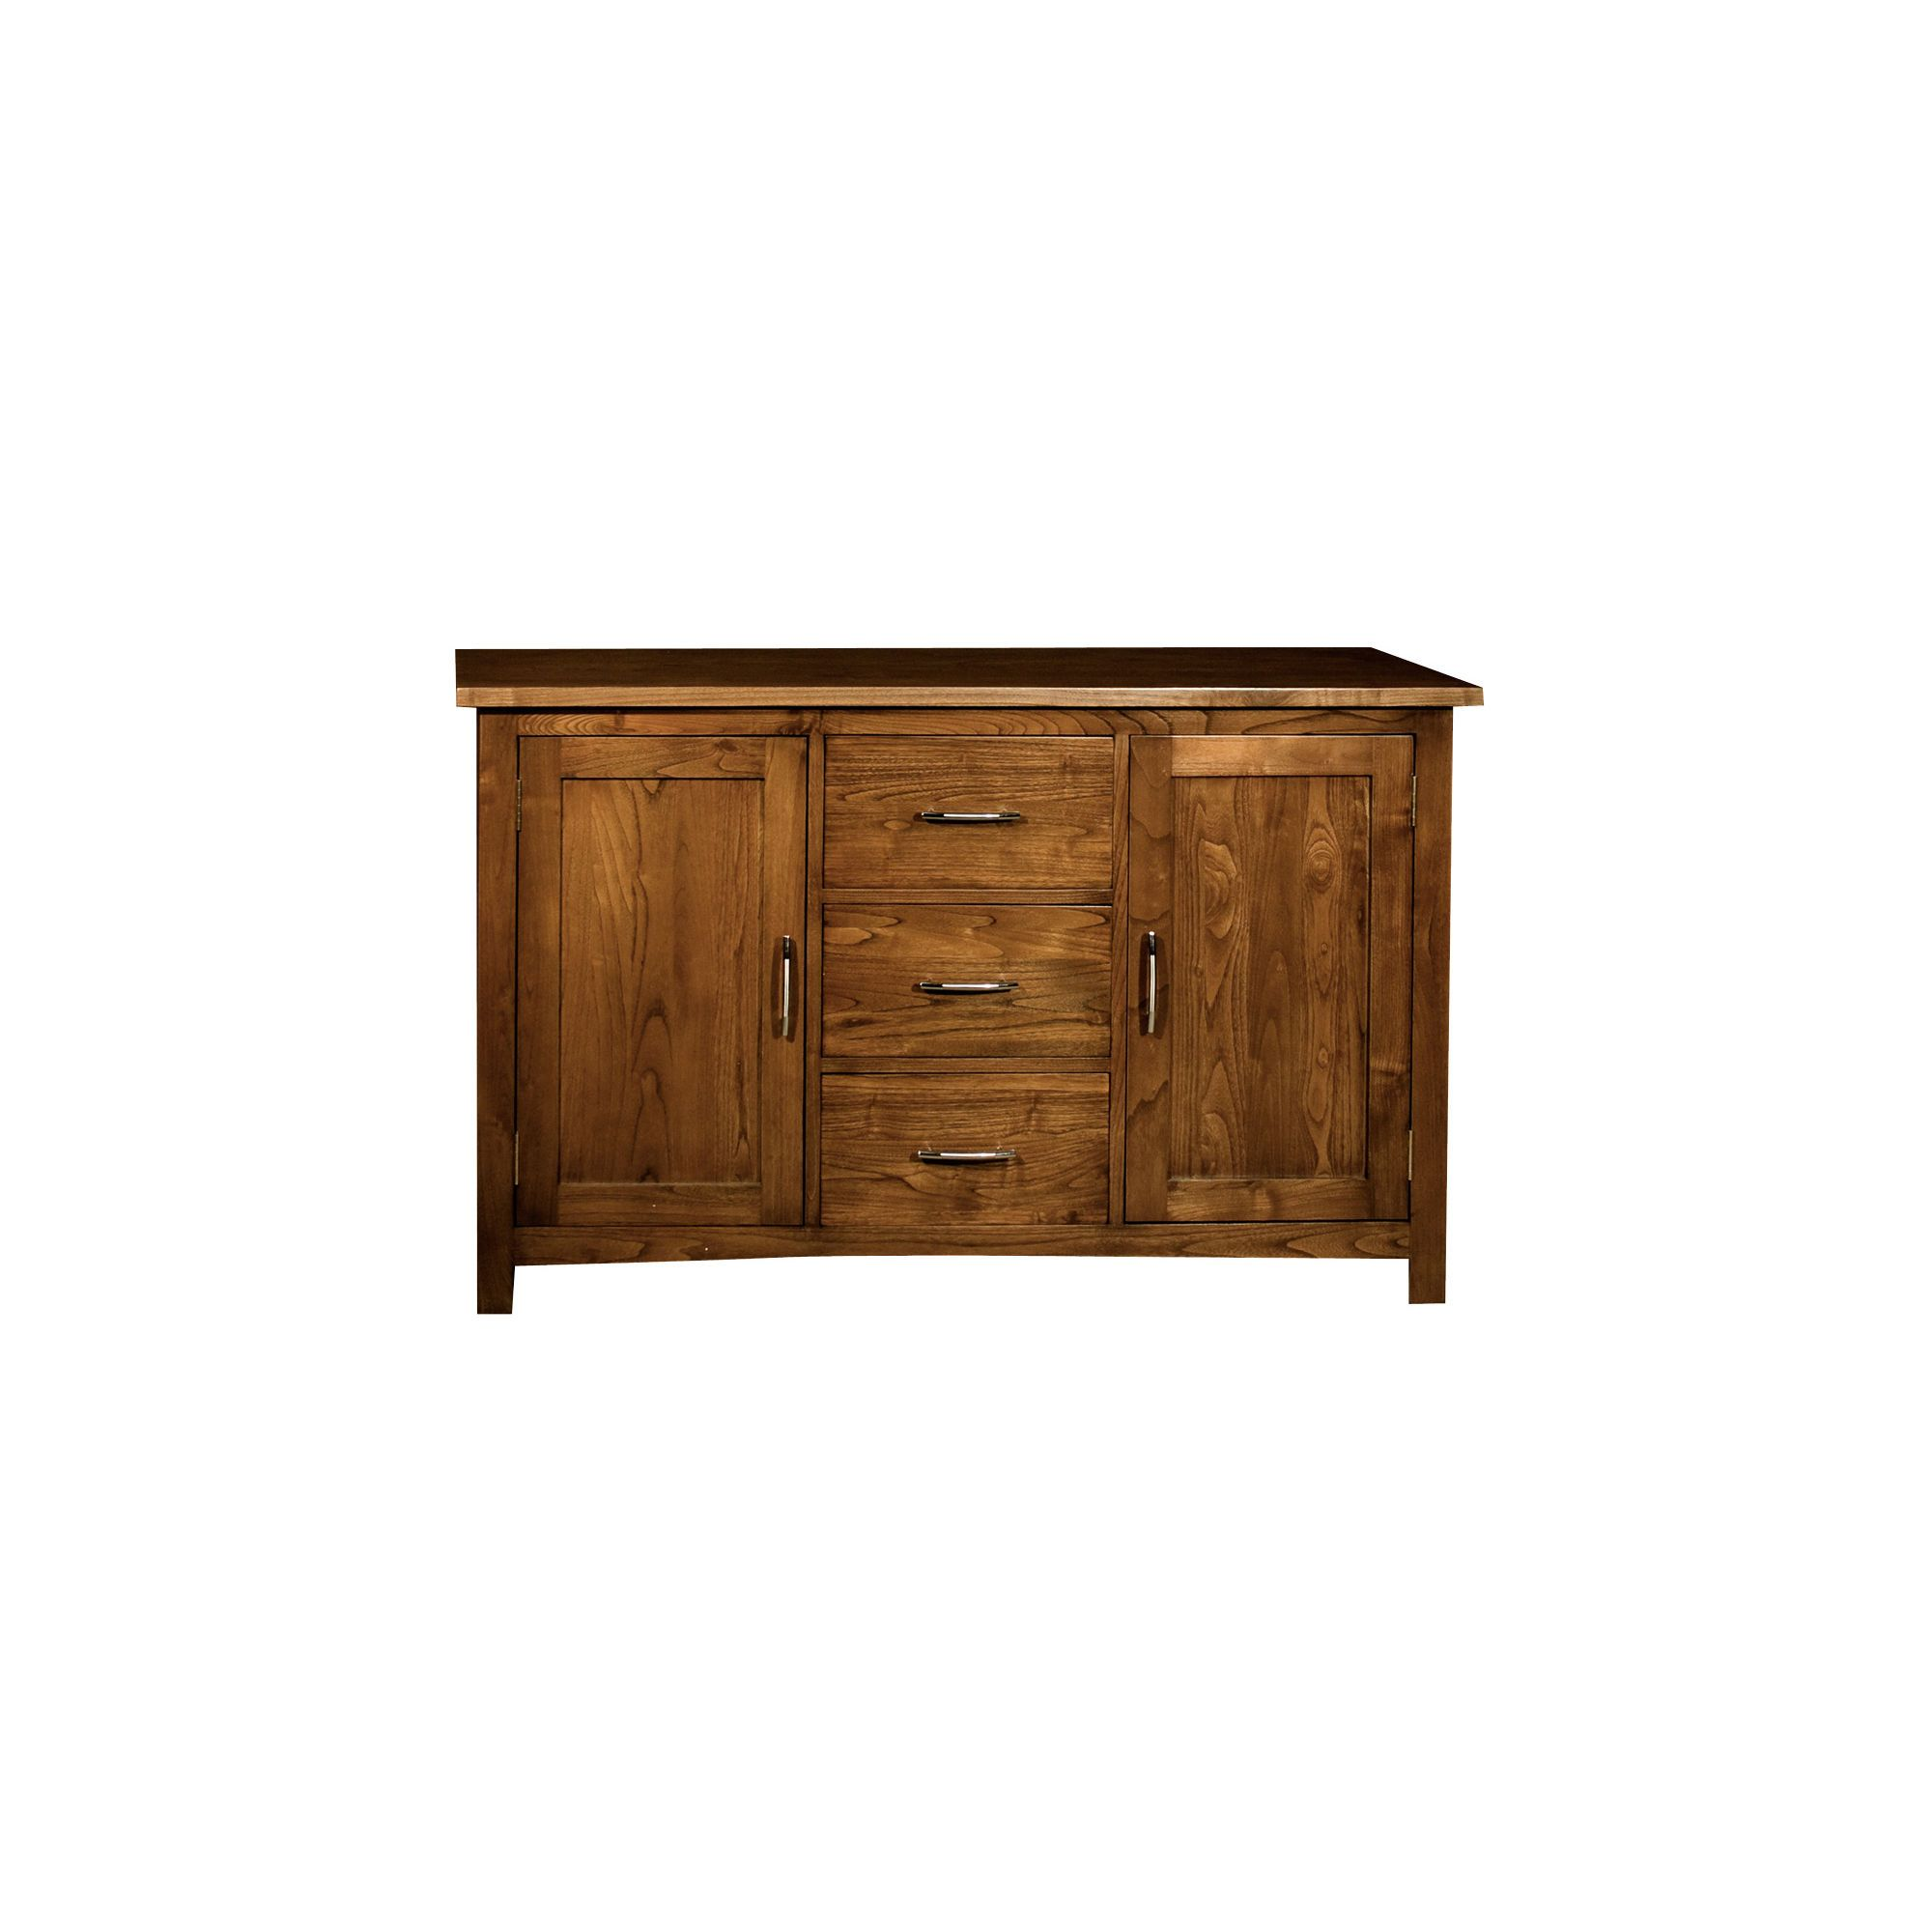 Alterton Furniture Hampton Sideboard at Tesco Direct